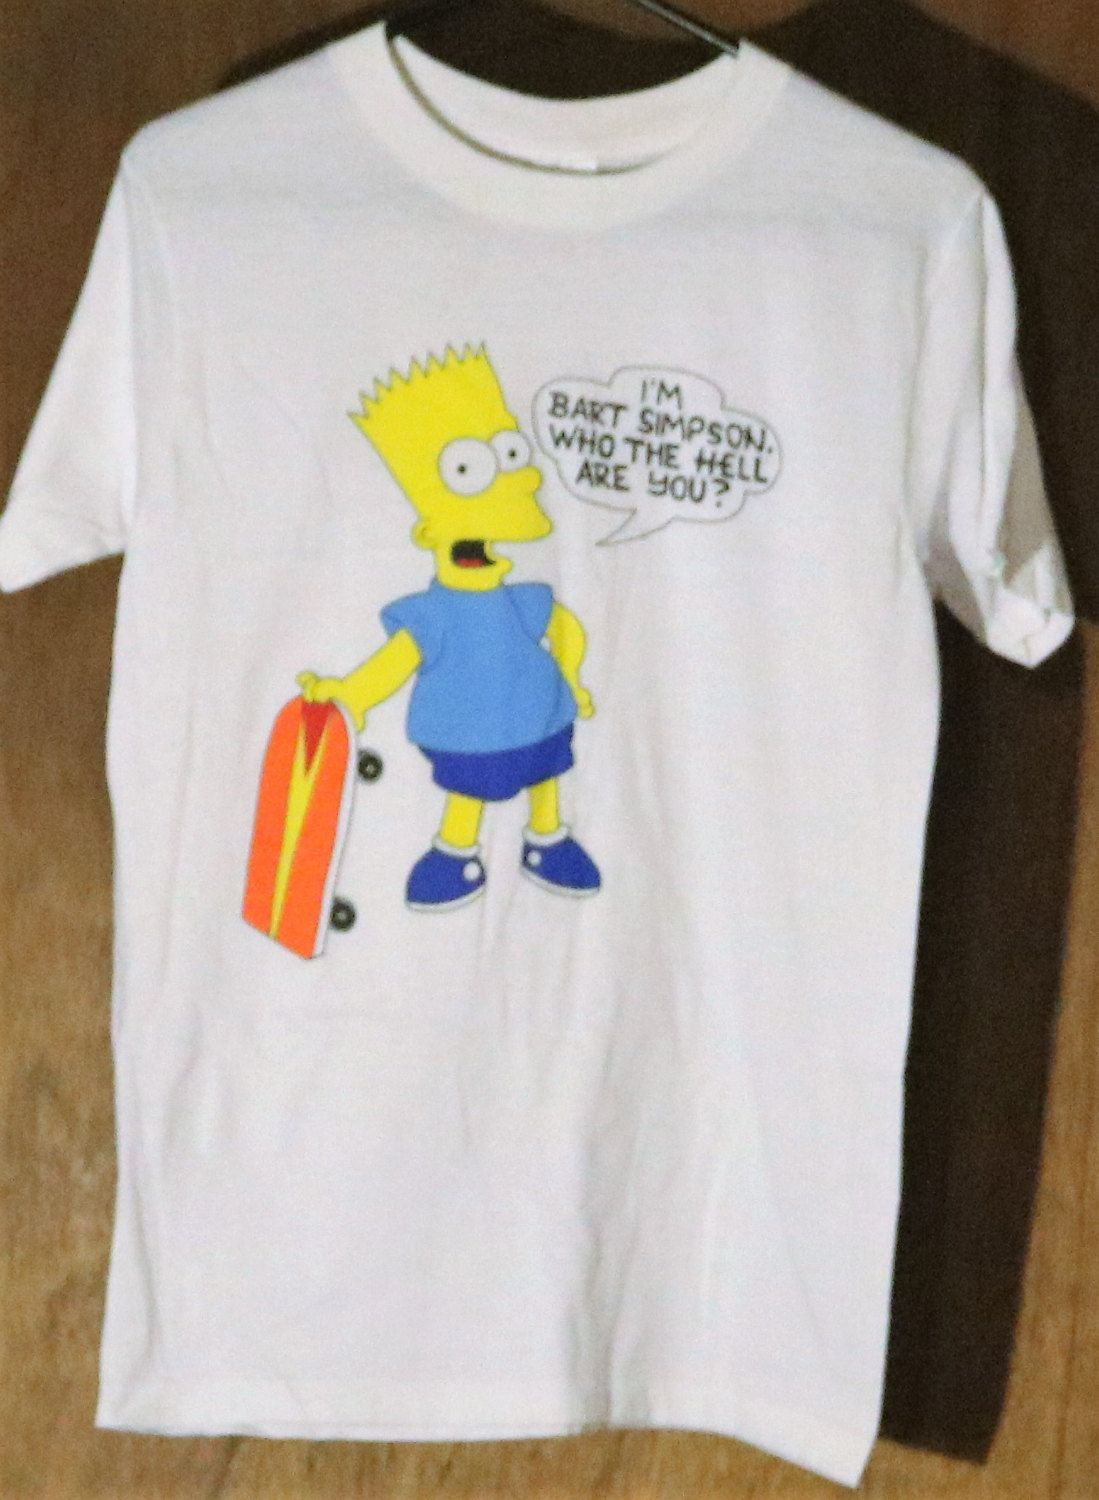 ed407b32c Vintage Medium I'm Bart Simpson, Who The Hell Are You, T-shirt by  HoardersBazaar on Etsy